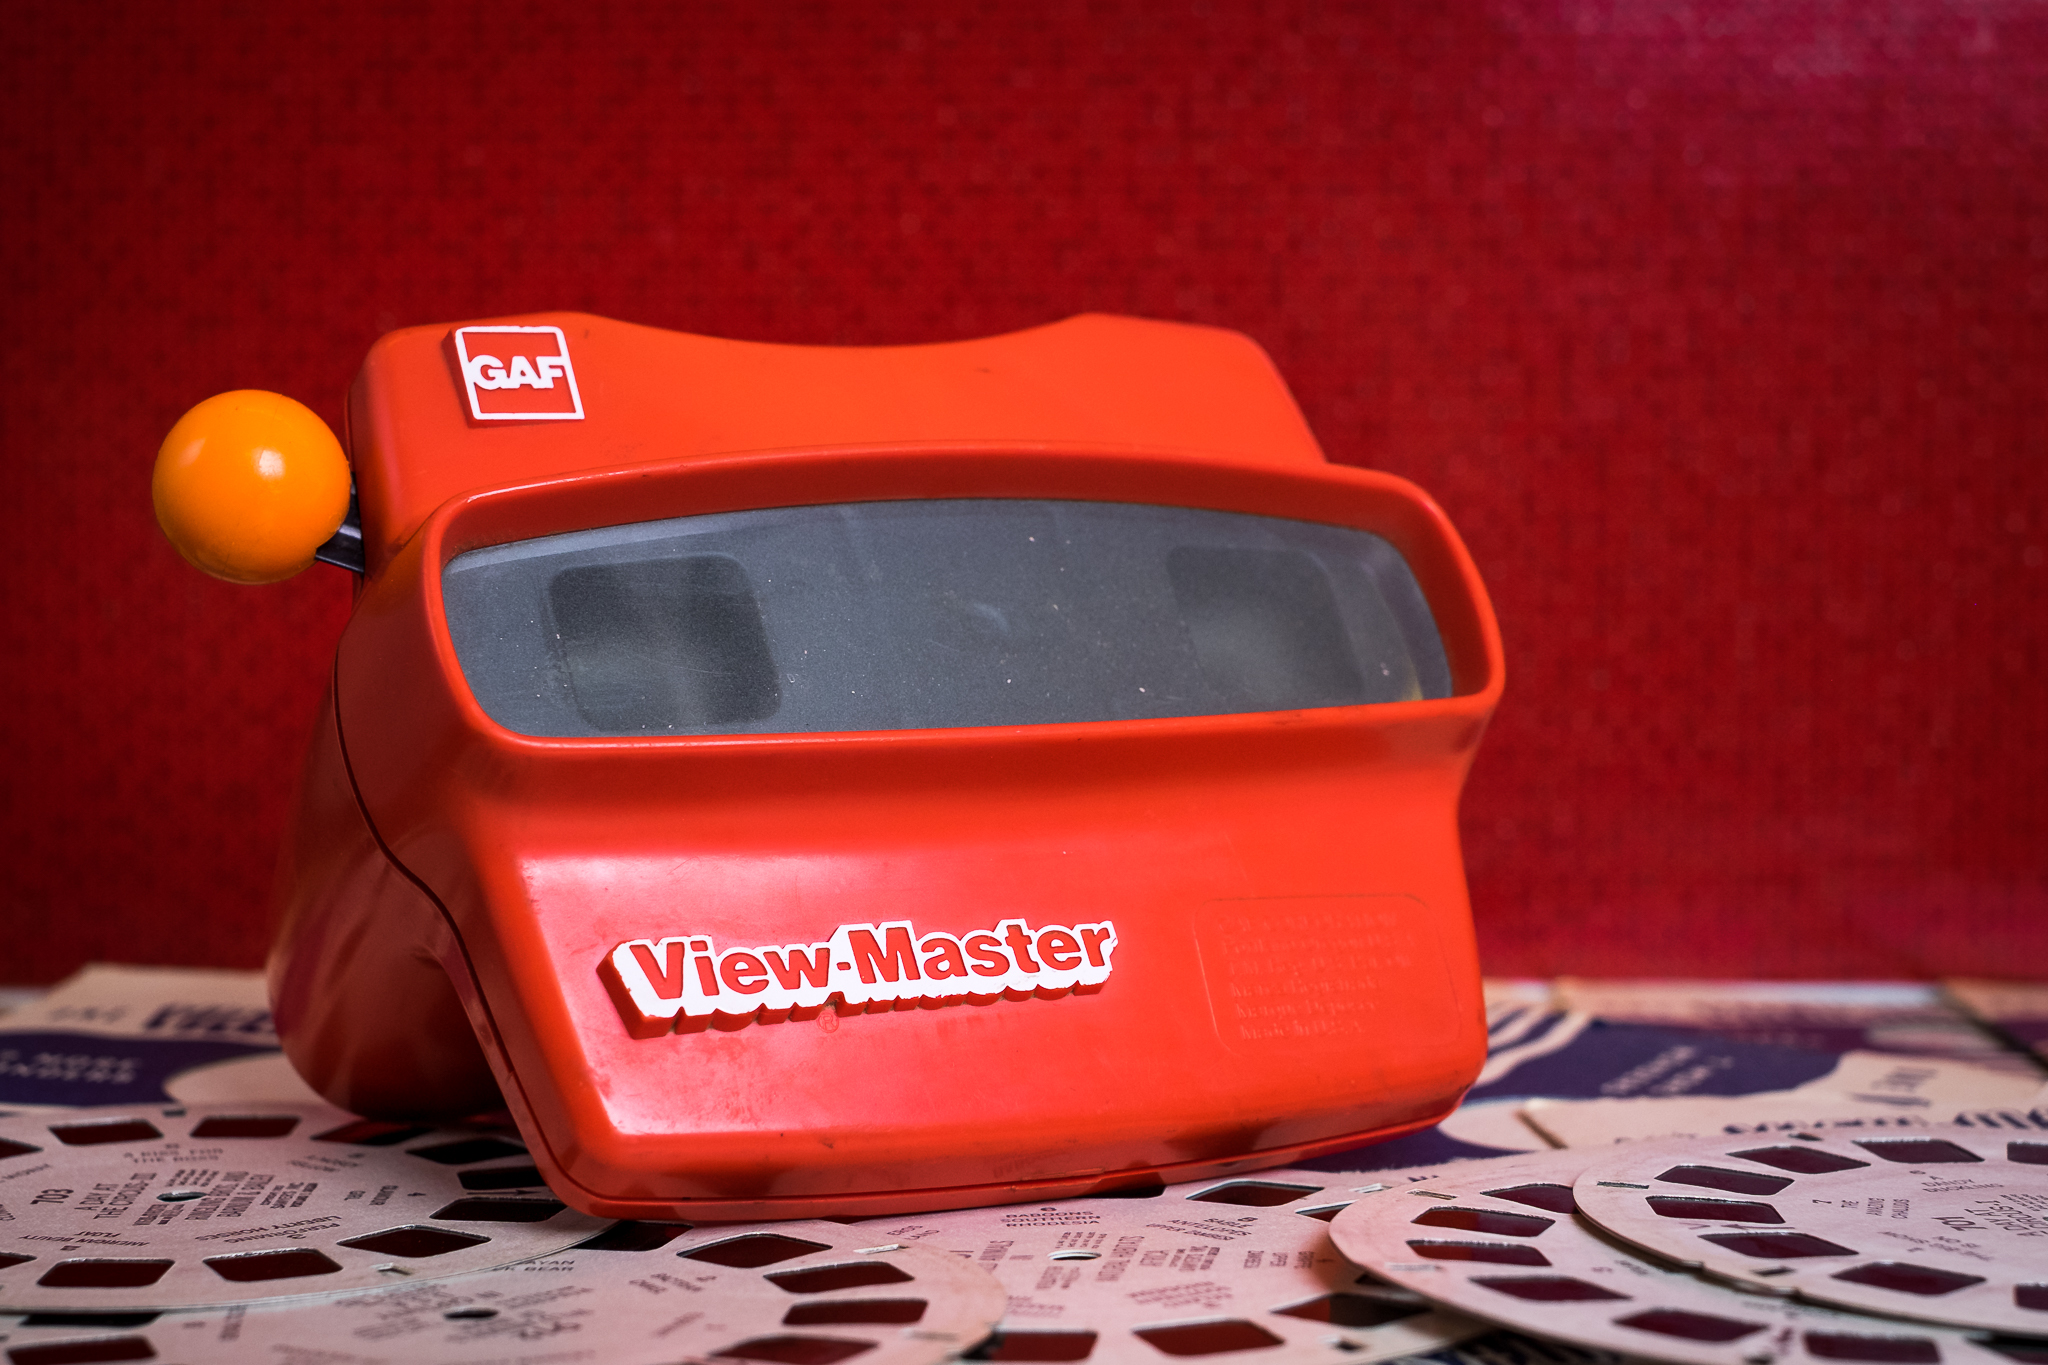 Viewmaster retro toys